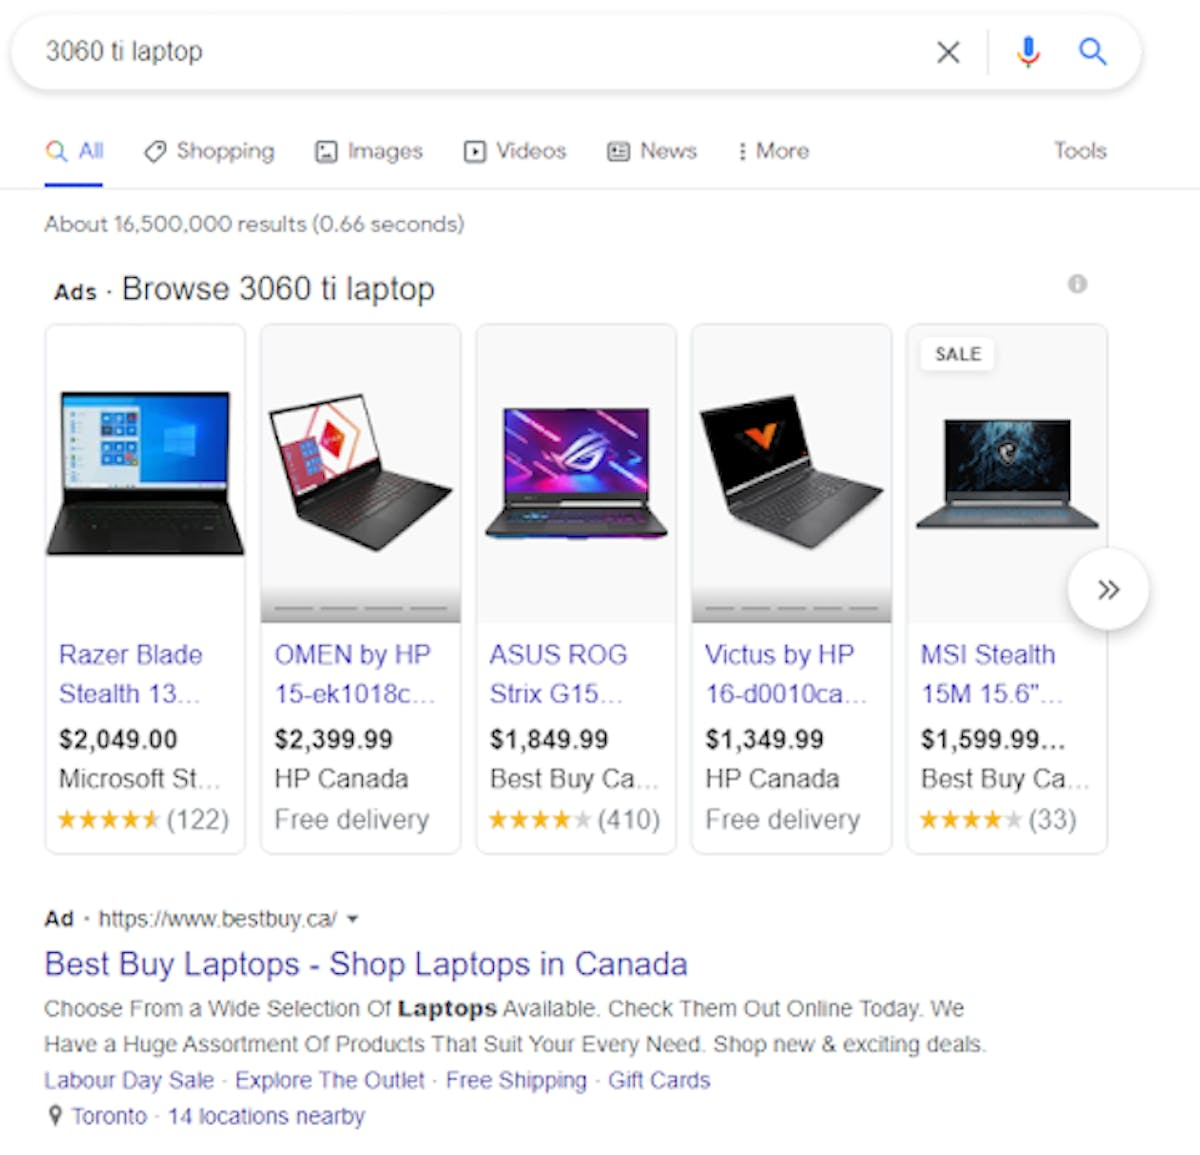 A google search for a laptop shows multiple ads as the top result